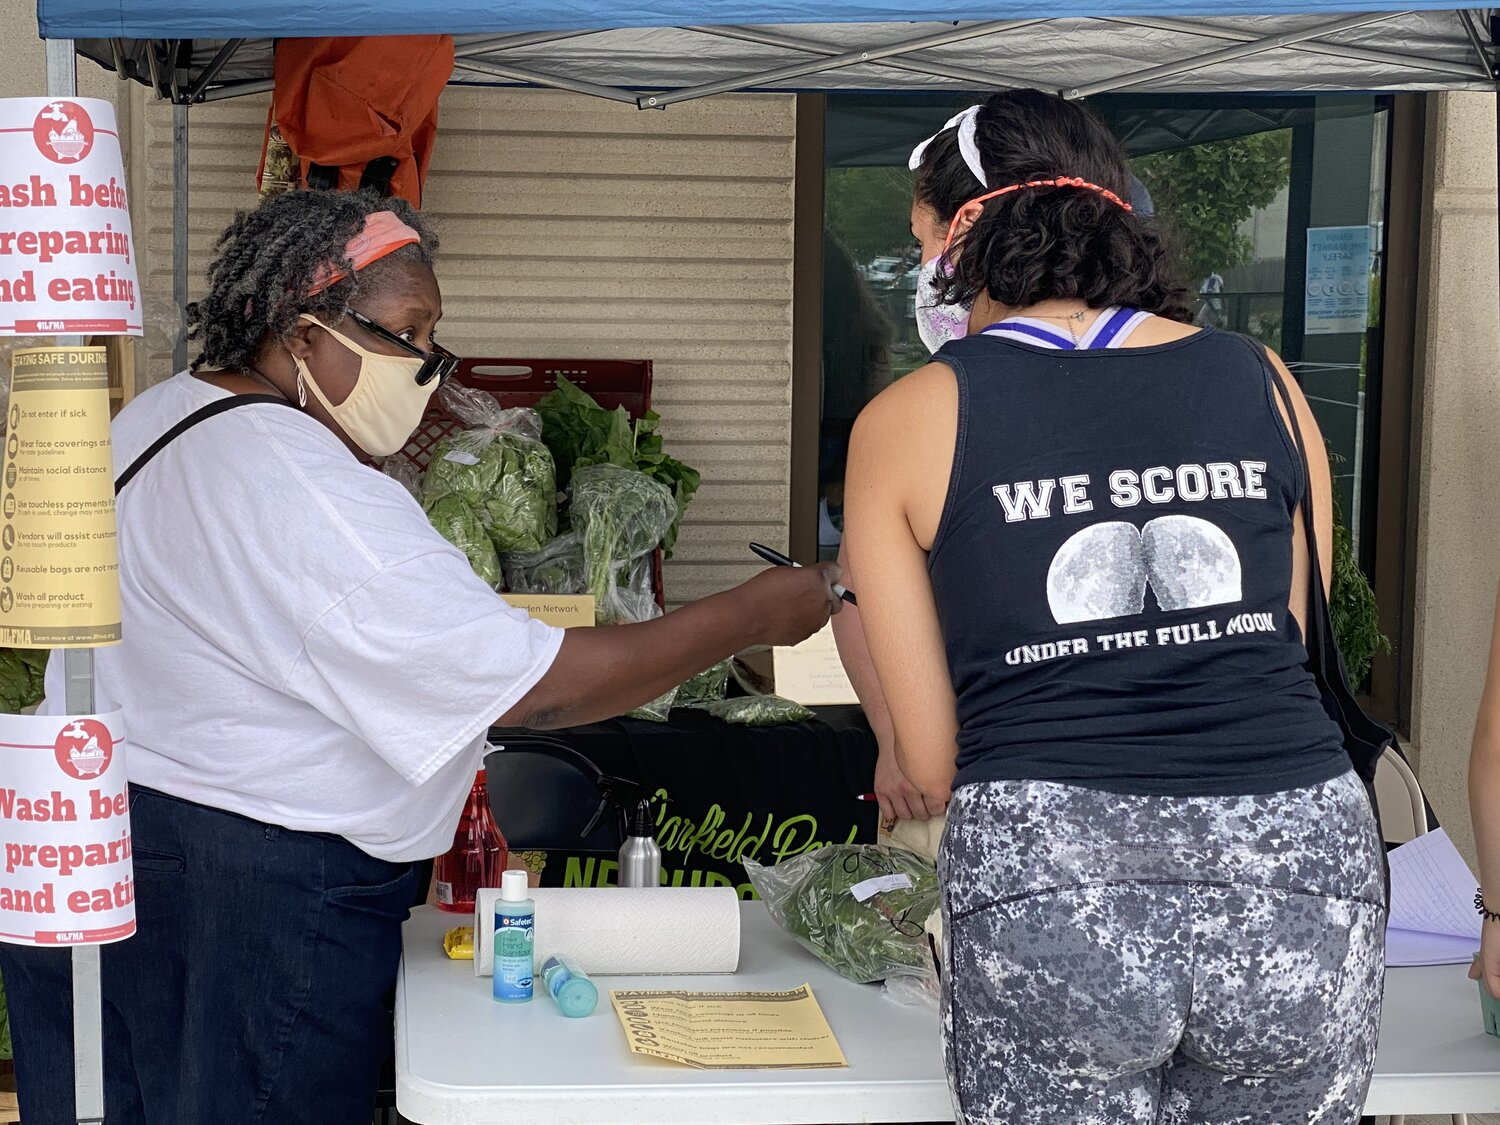 The Wellness Coordinator at The Garfield Park Community Council Angela Taylor (left) helps a customer (right) with their purchase at The Garfield Park Neighborhood Market on July 11. 2020. Photo by Mariah McBride.